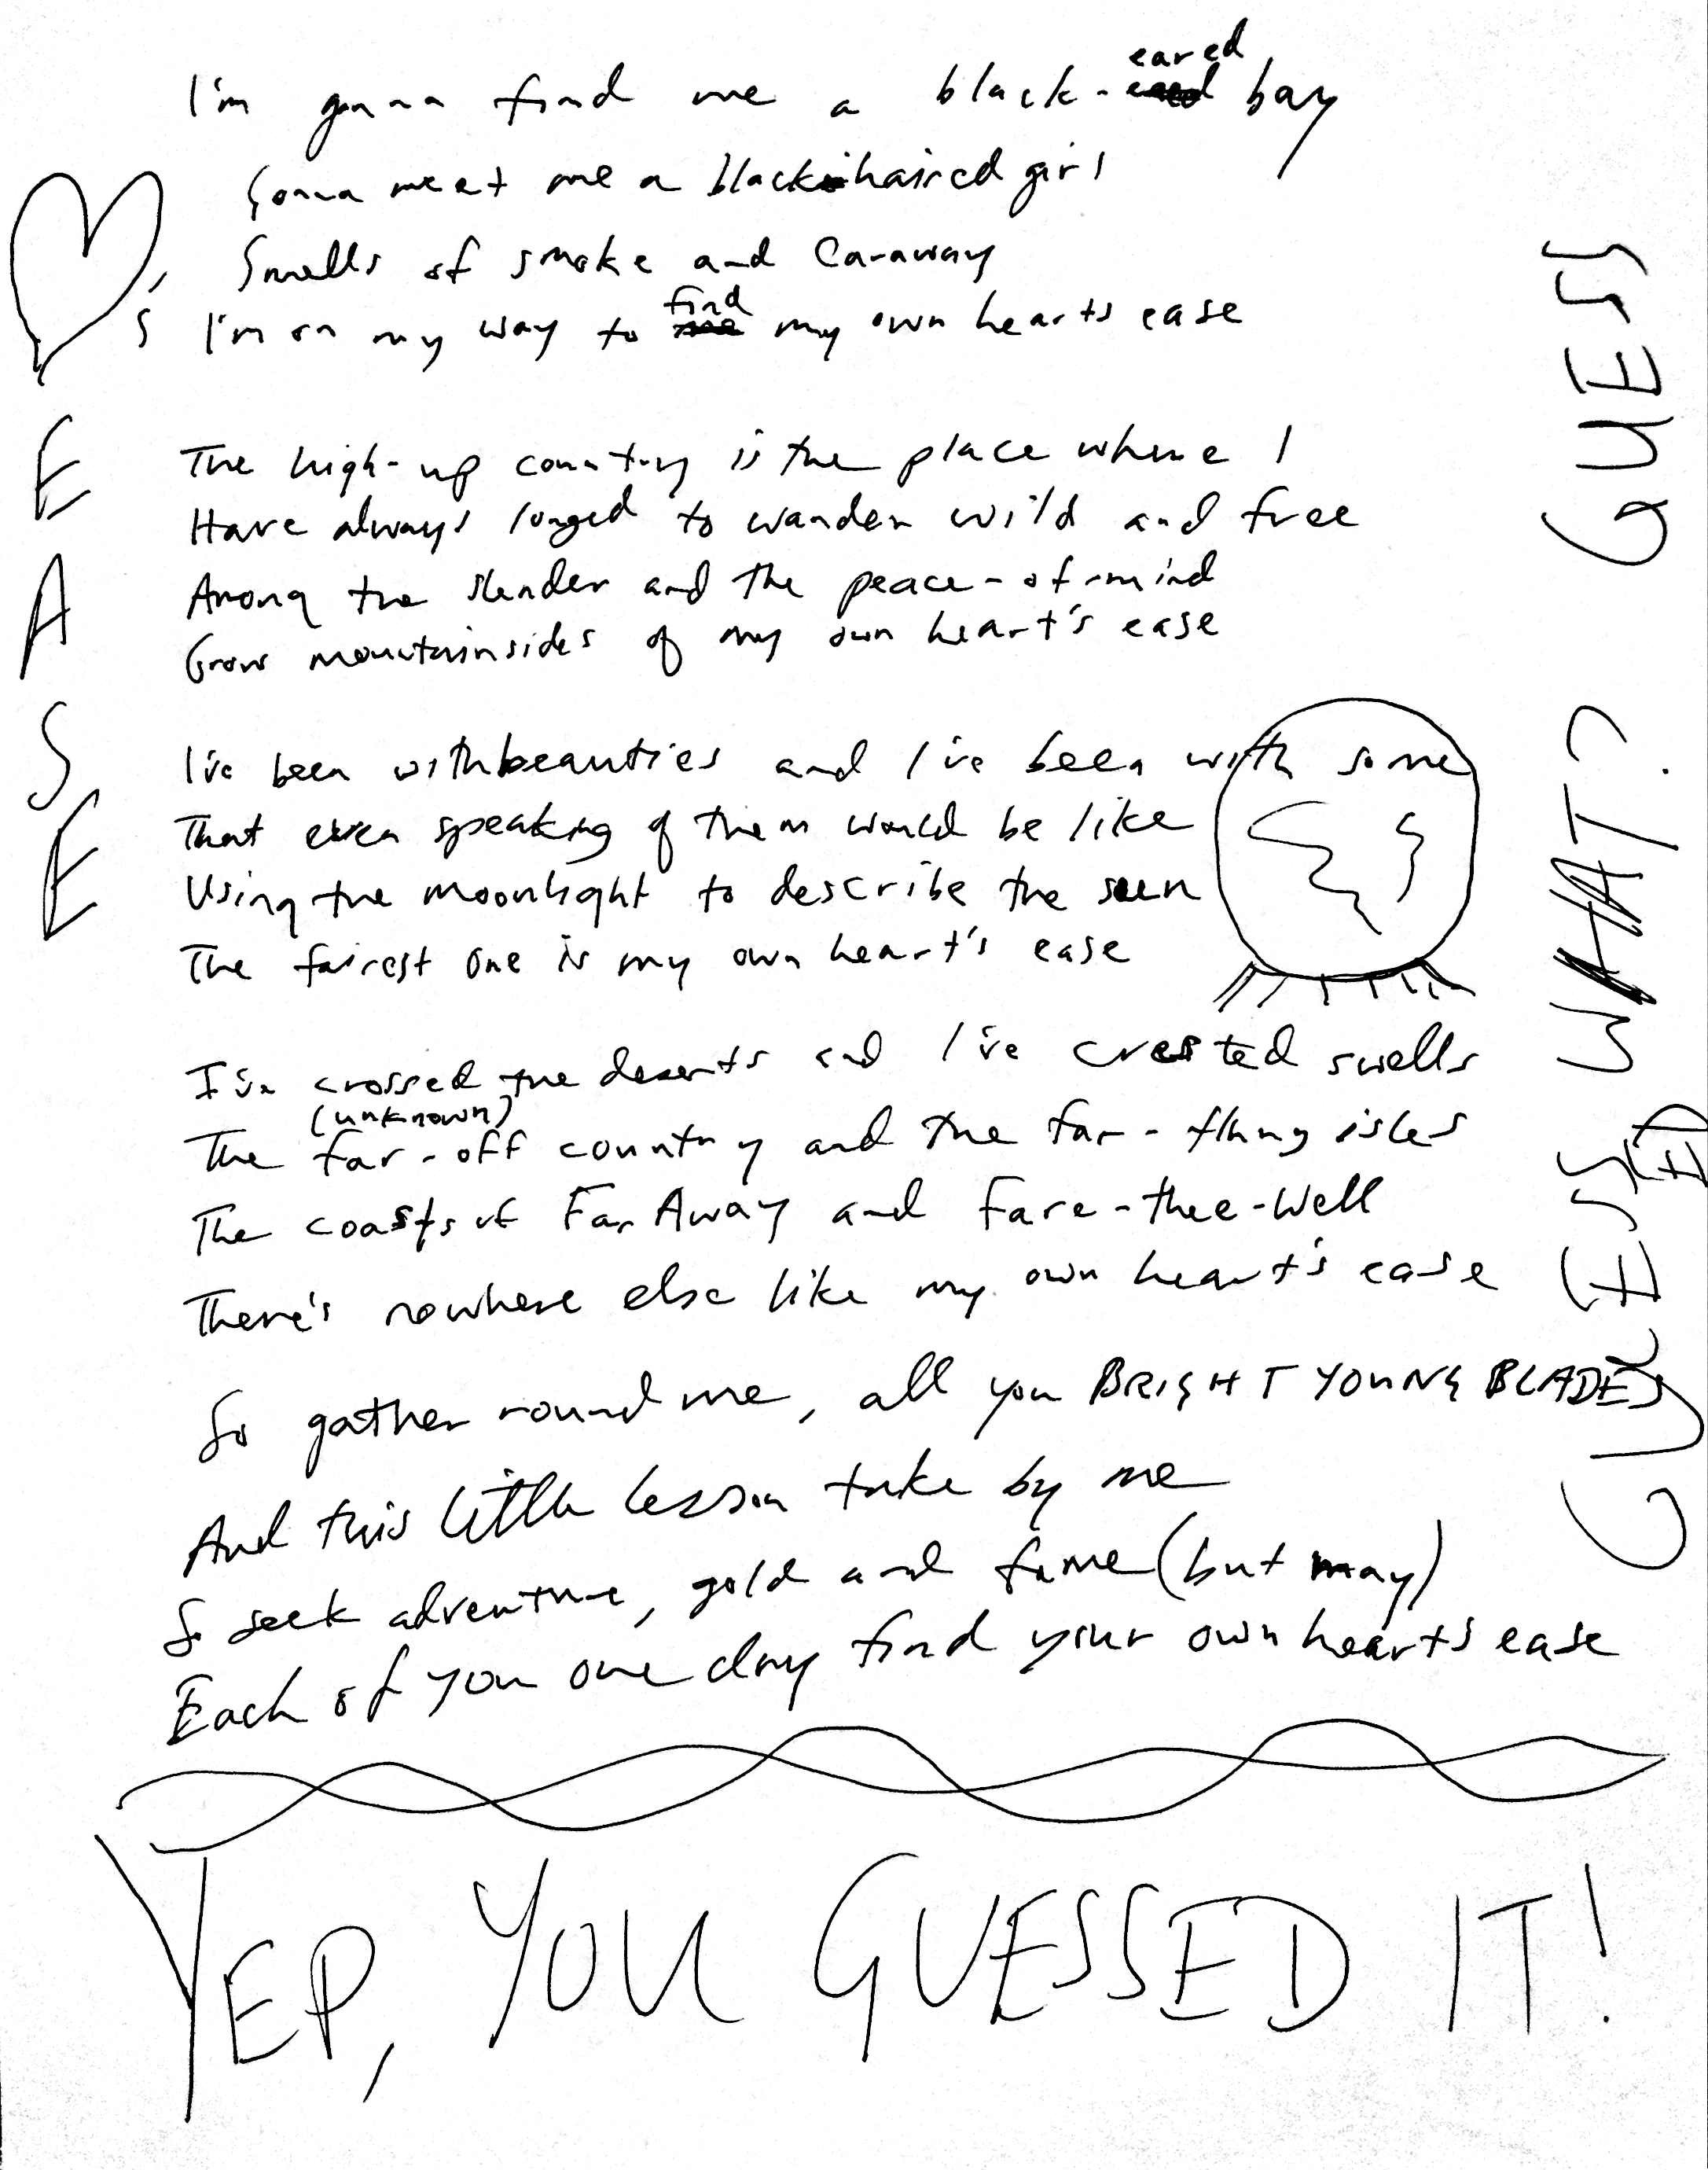 07 Heart's Ease Lyrics